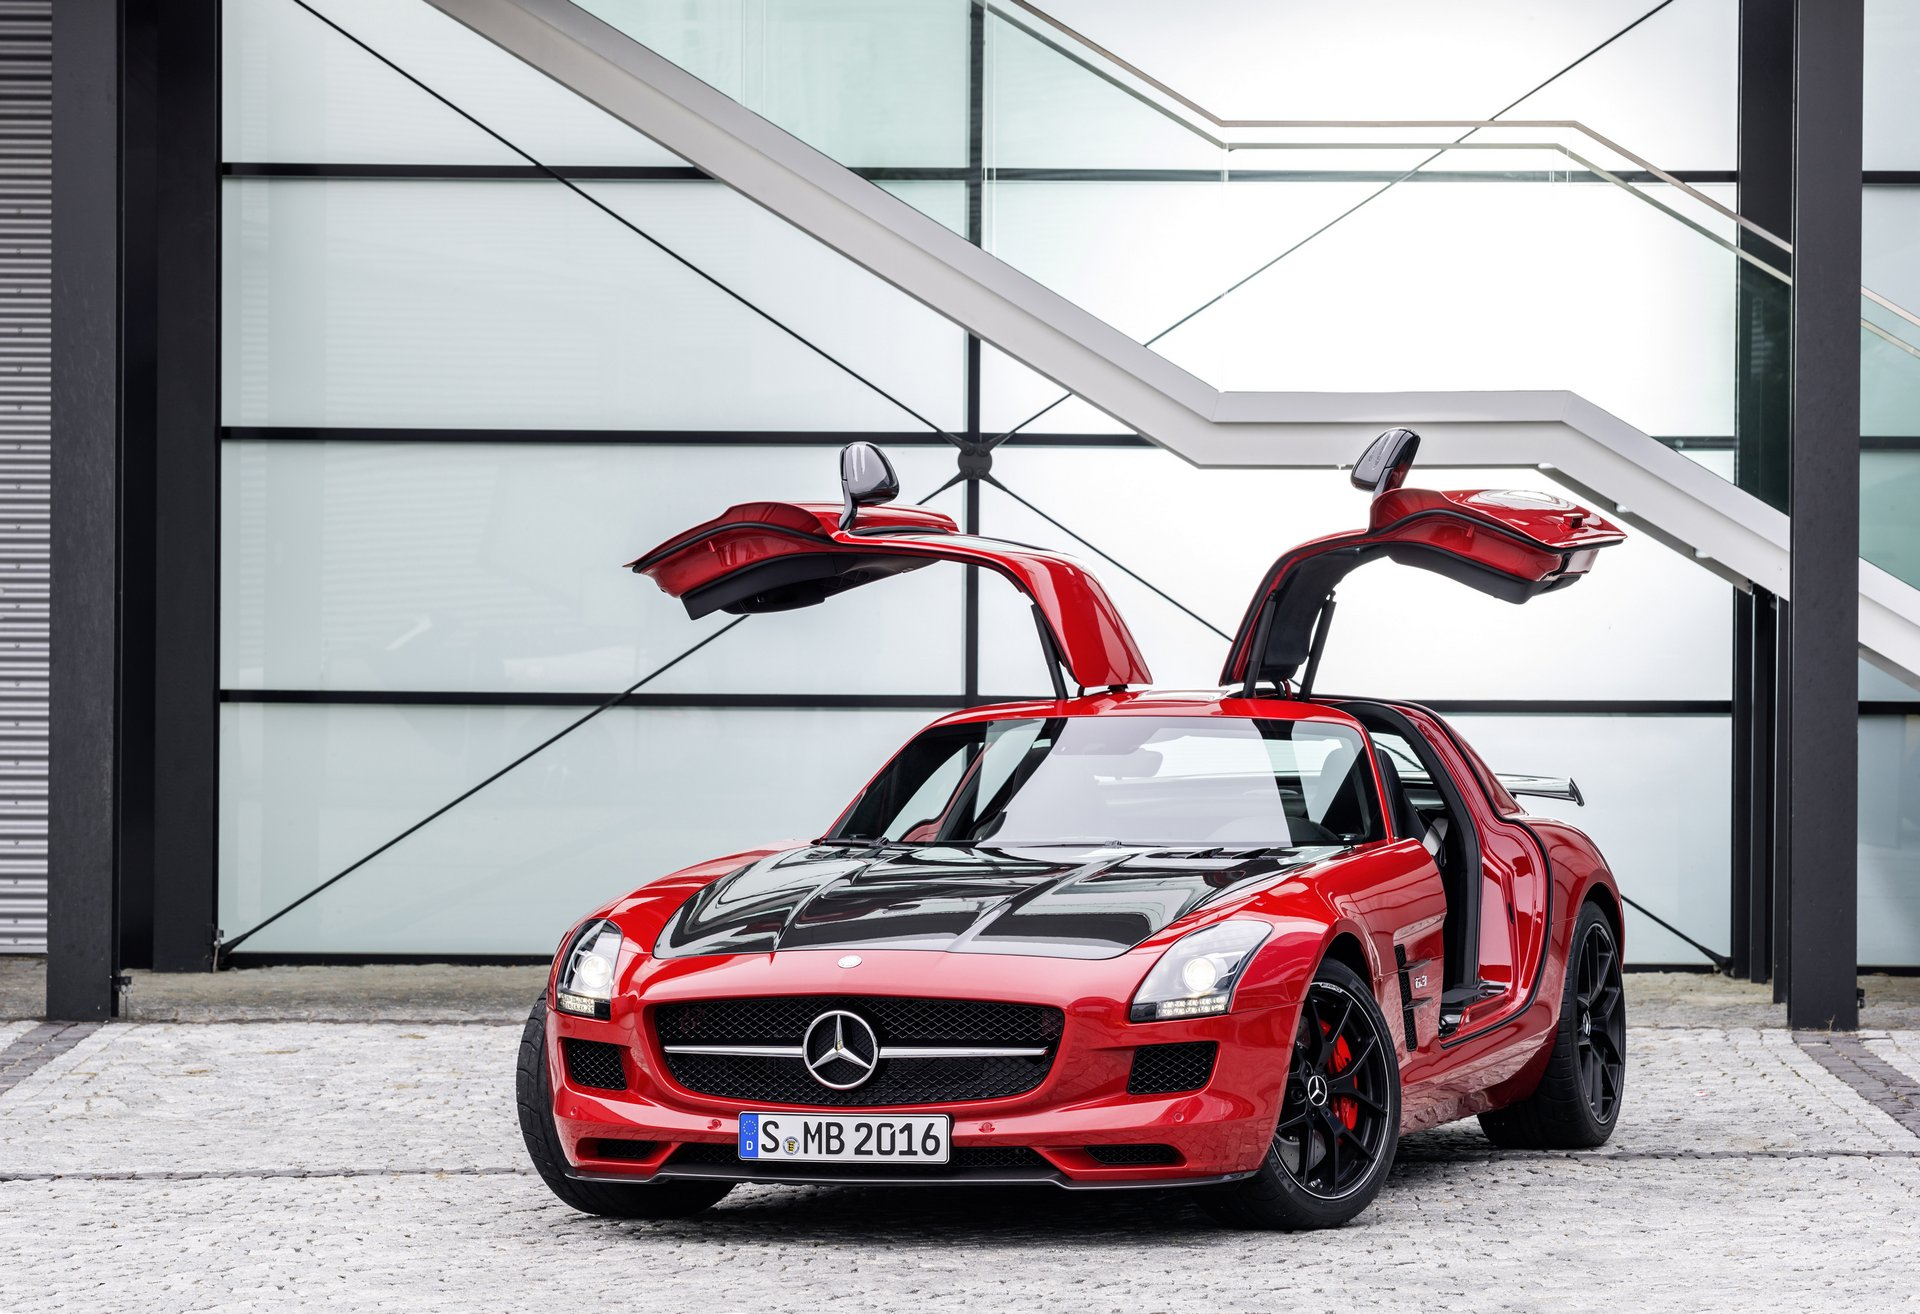 Mercedes-Benz Sls Amg Gt Final Edition #14